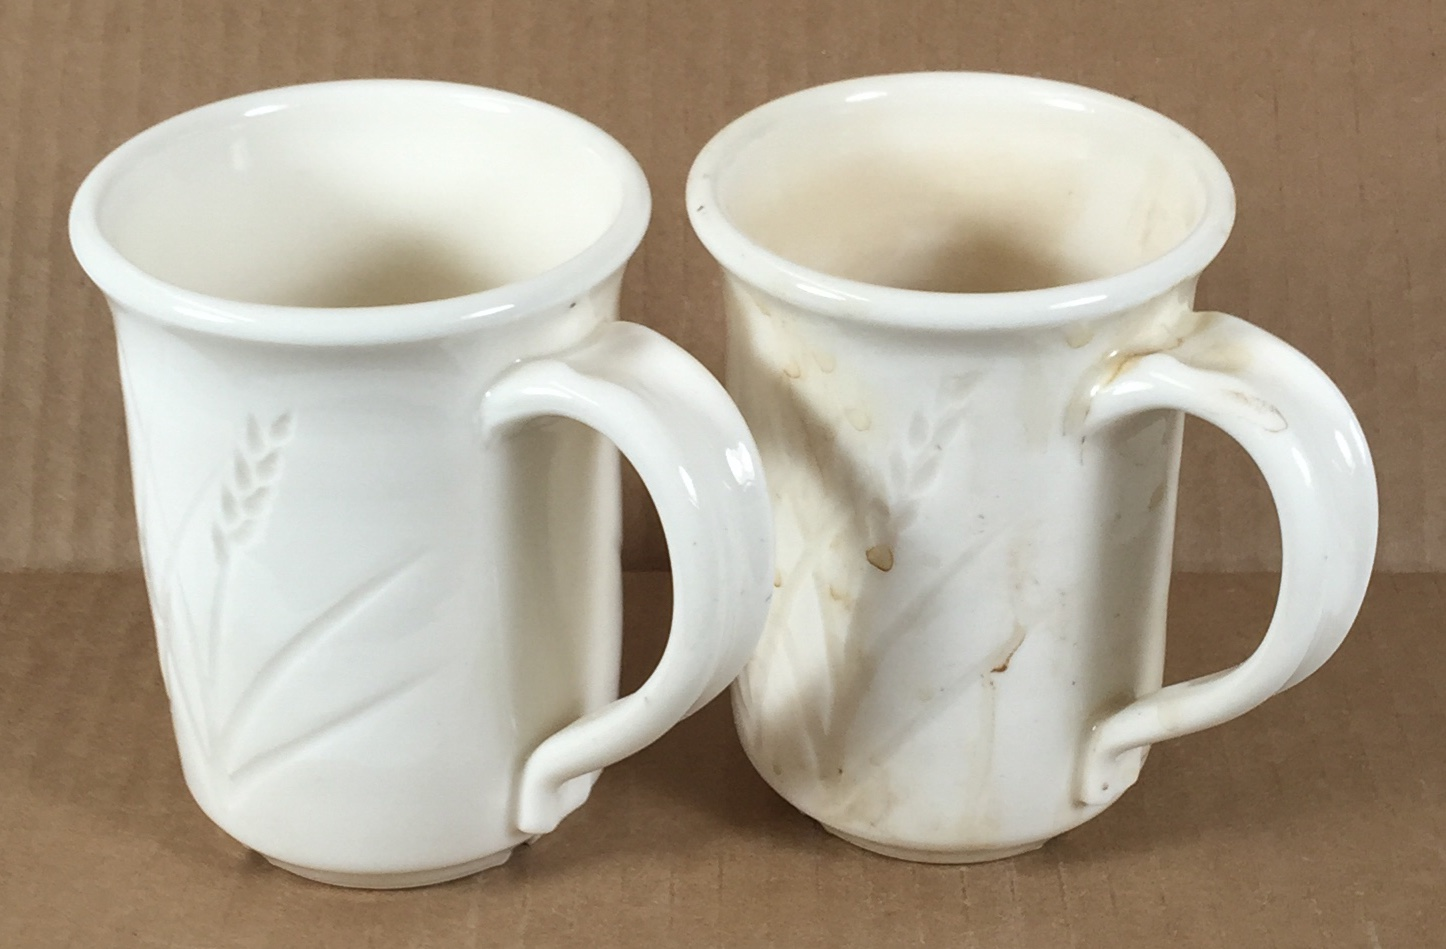 A problem with super-white porcelain mugs